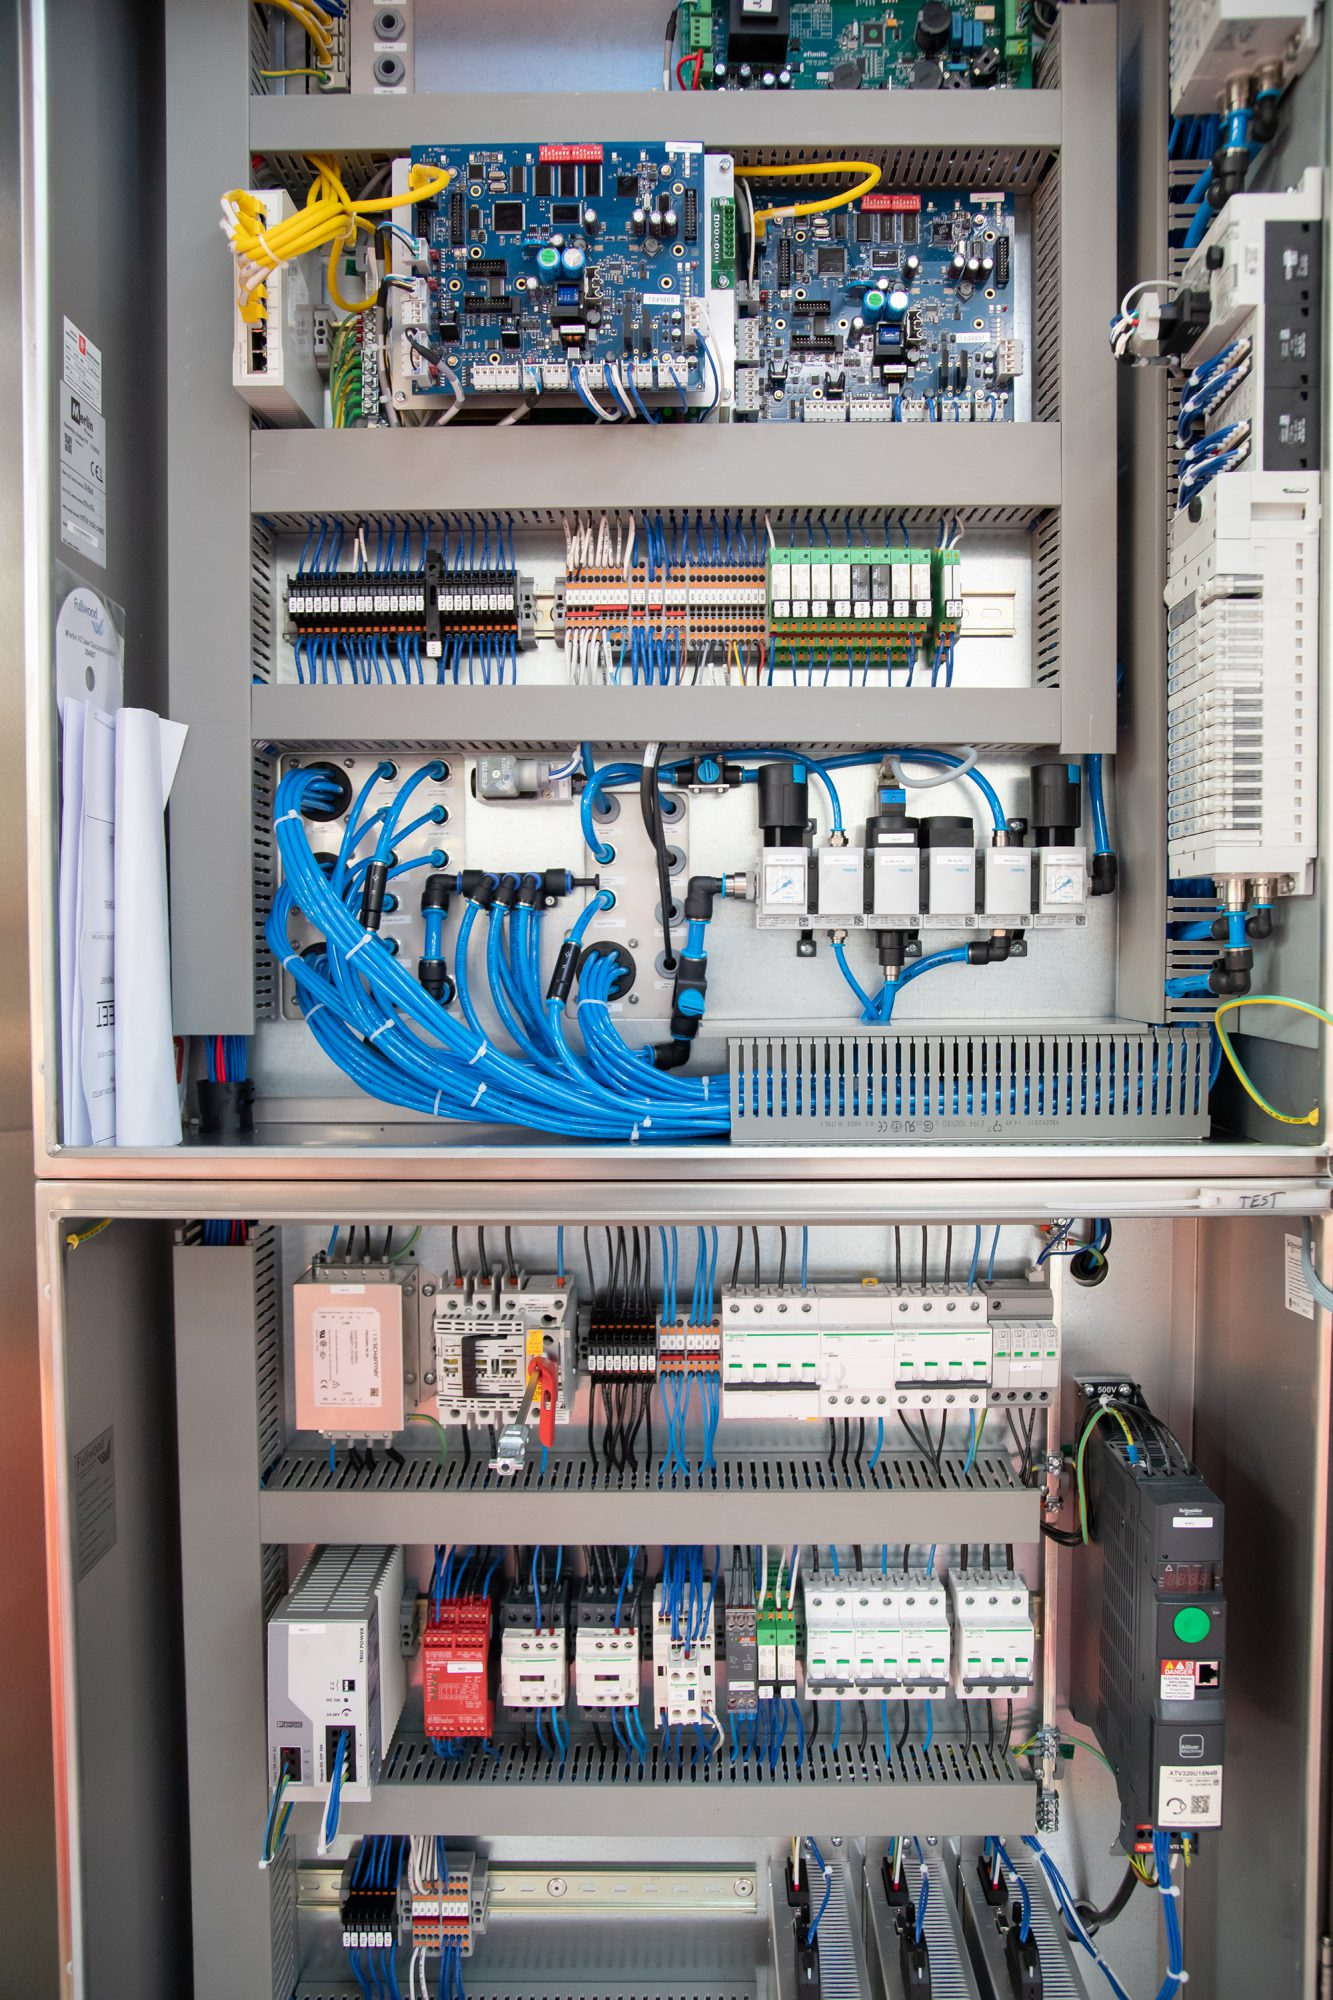 UL508A standards » ppfullwood 124 » PP Control & Automation